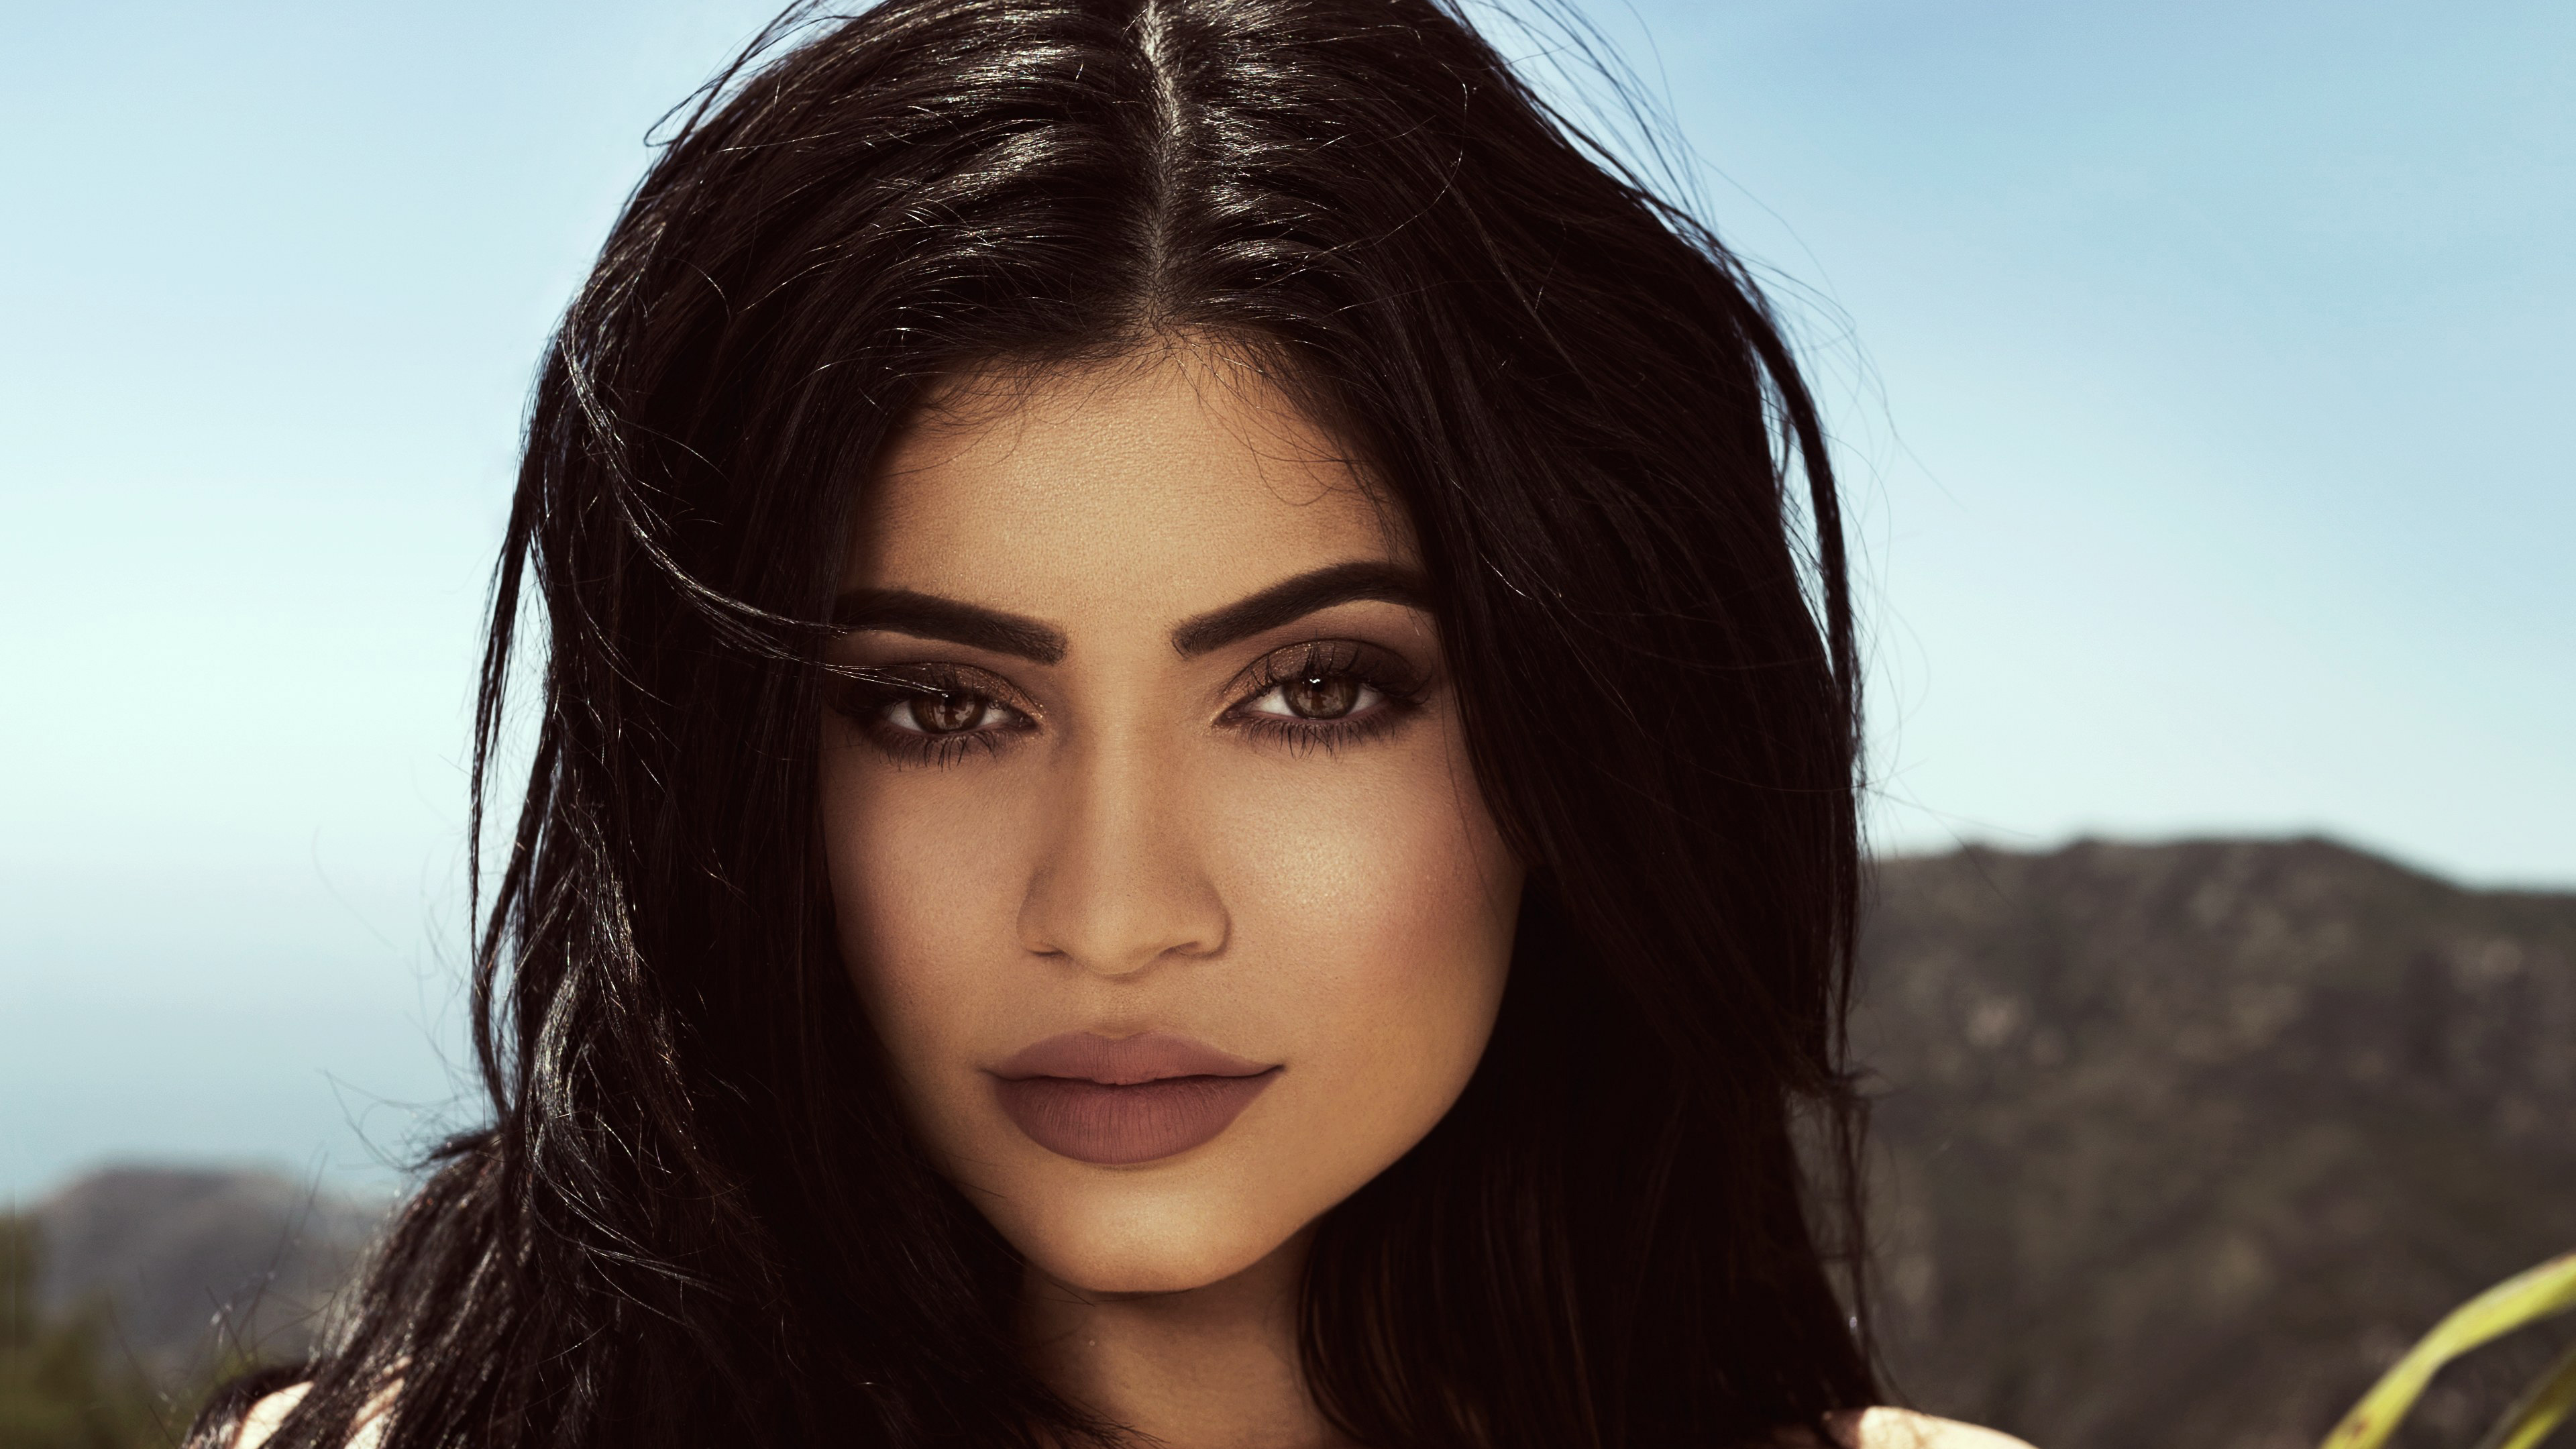 kylie jenner face makeup widescreen wallpaper 62547